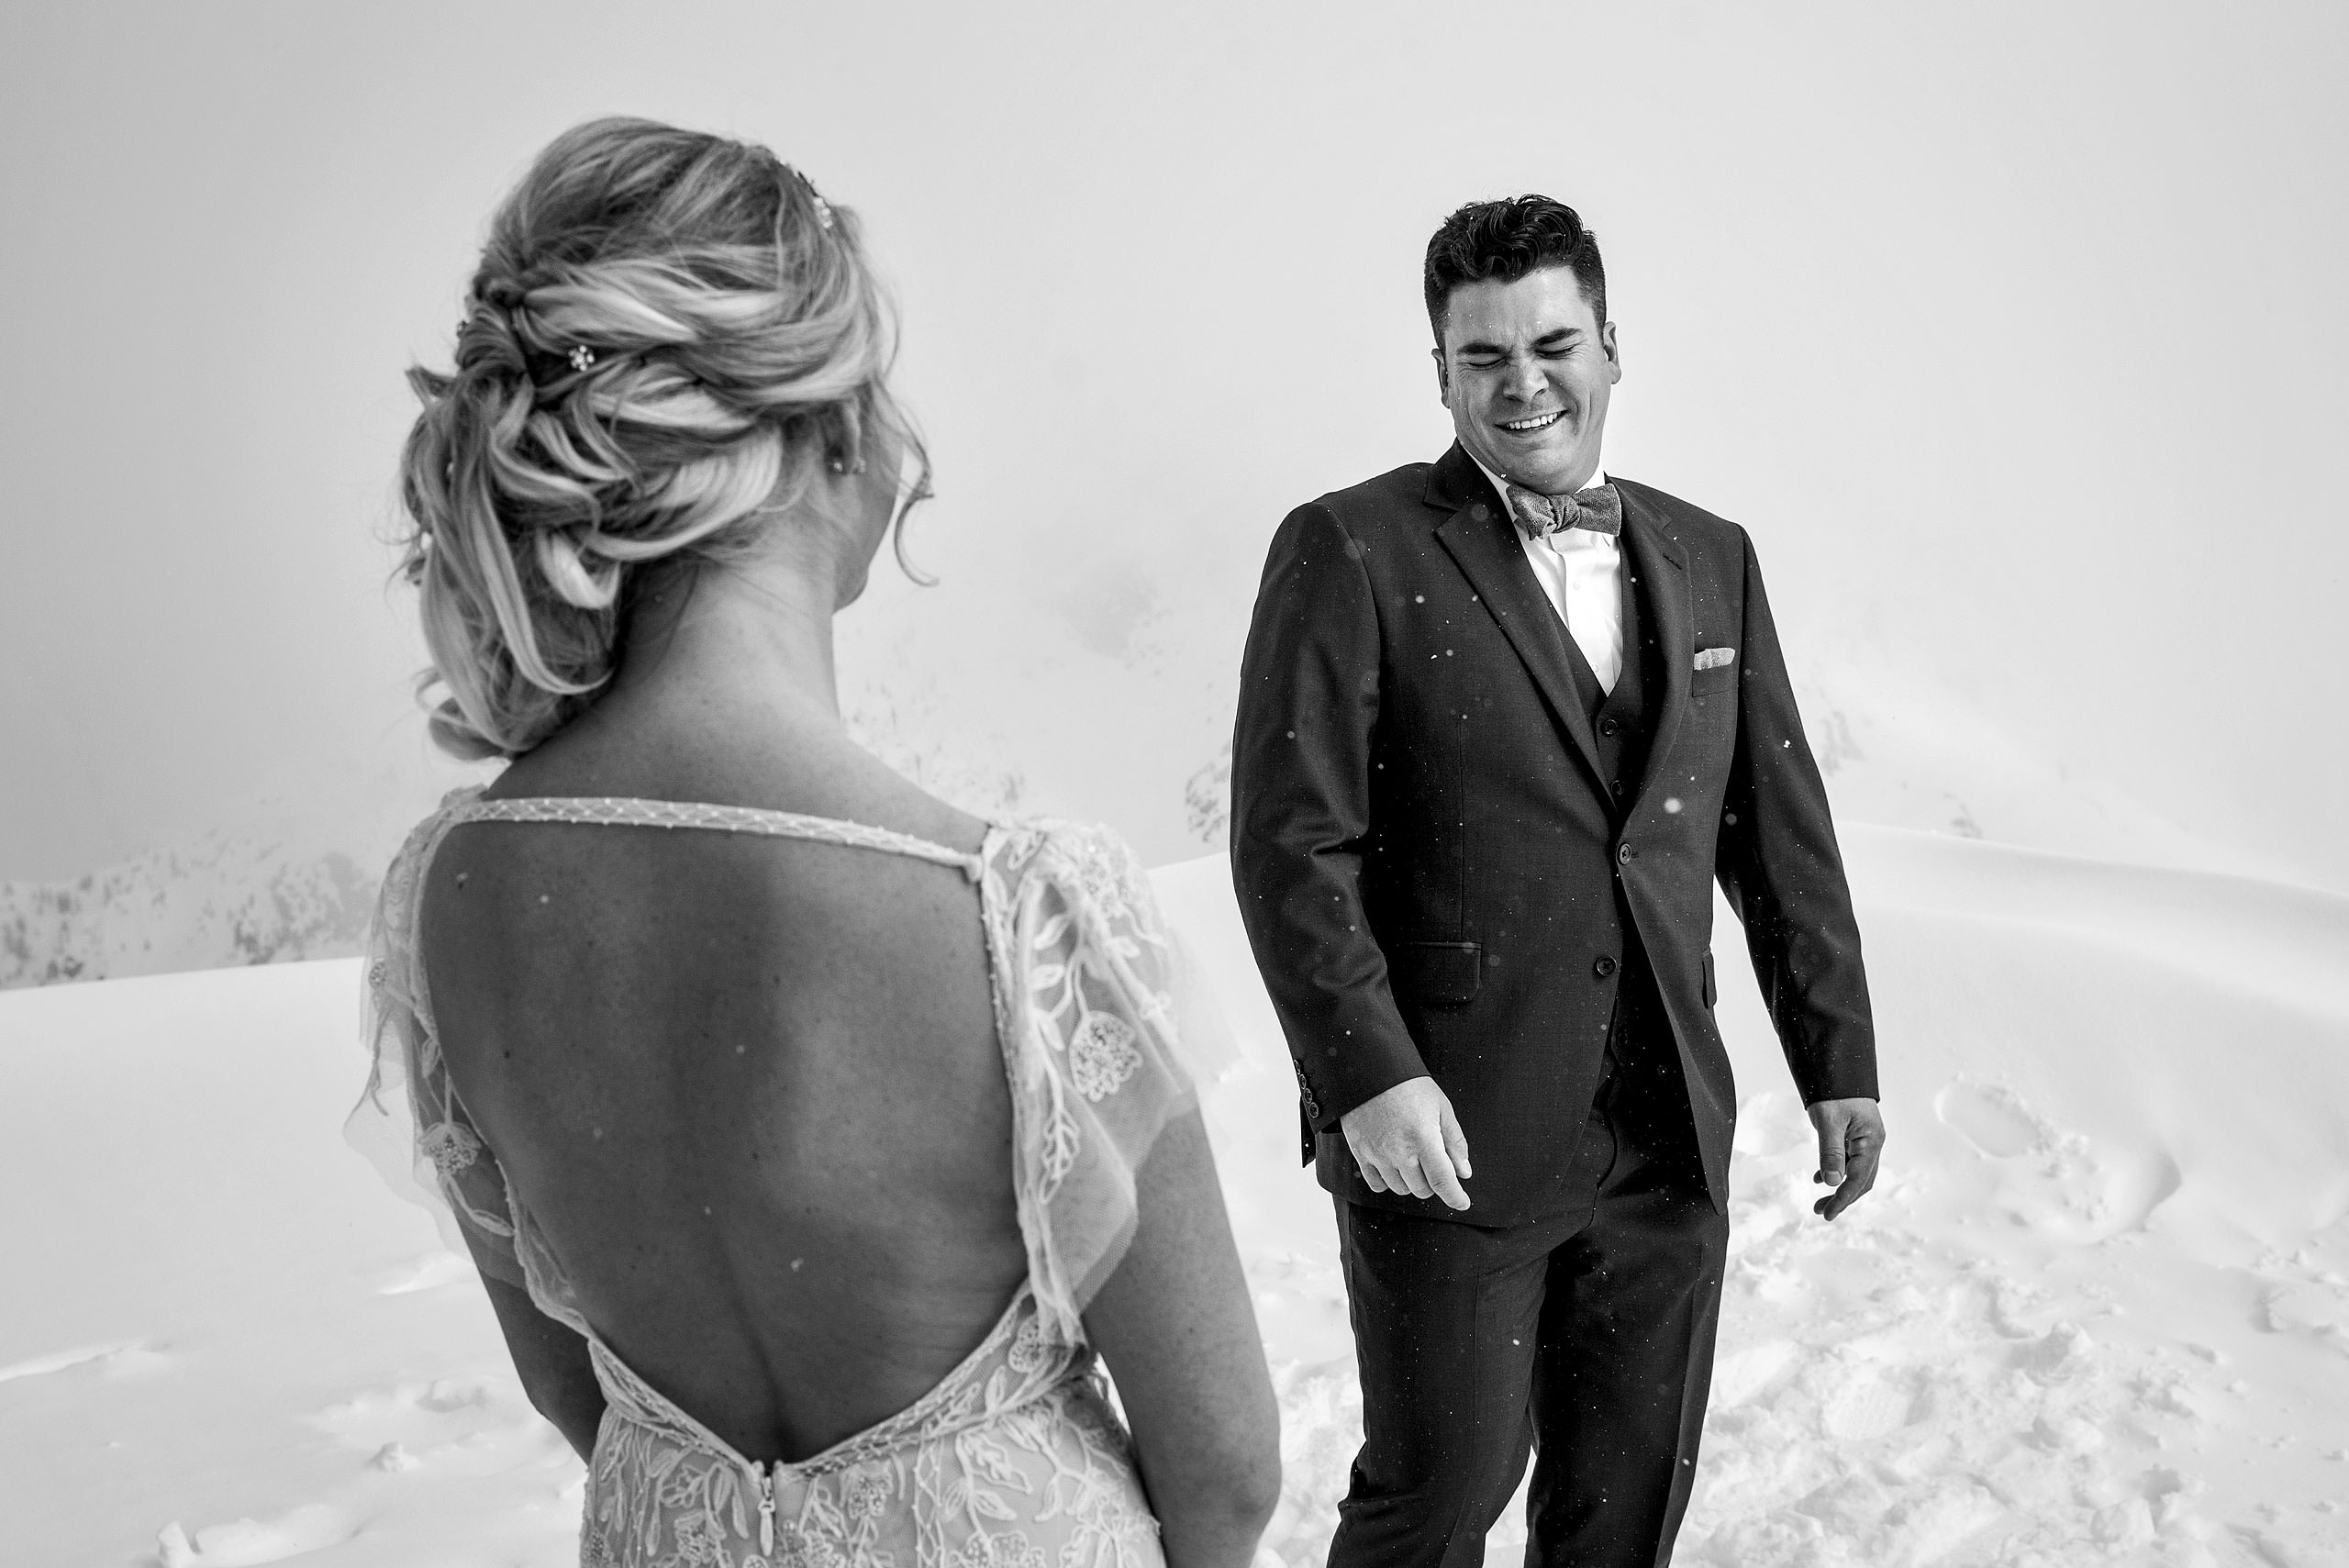 a groom crying tears of joy from seeing his bride for the first time at a winter kicking horse wedding by sean leblanc